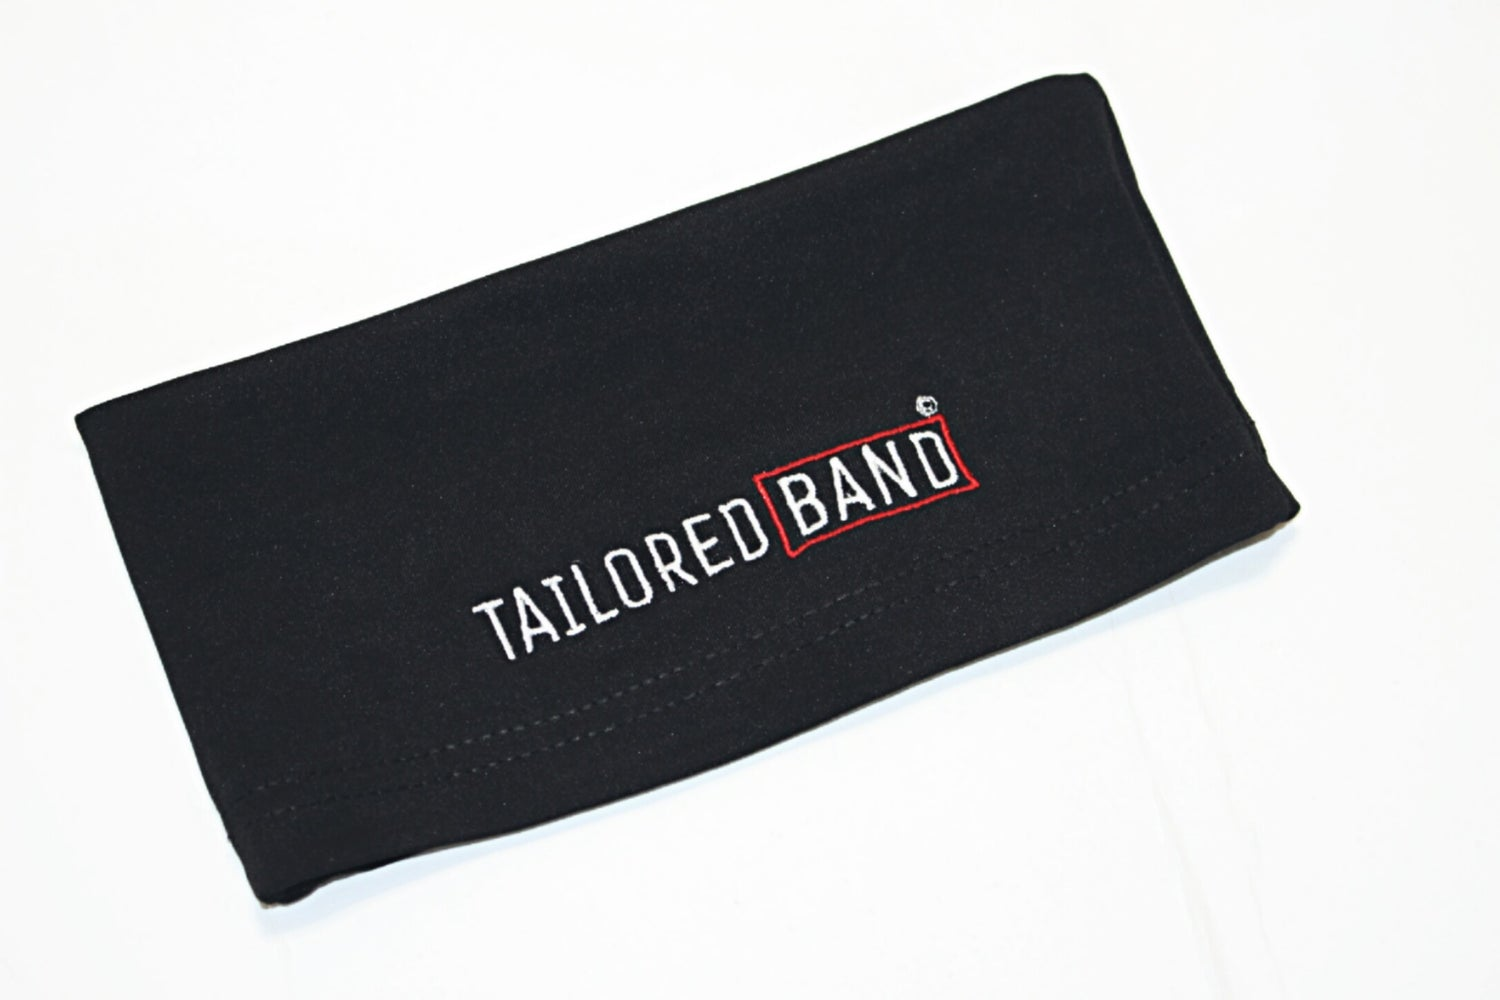 Image of TAILOREDBAND Avail Now!